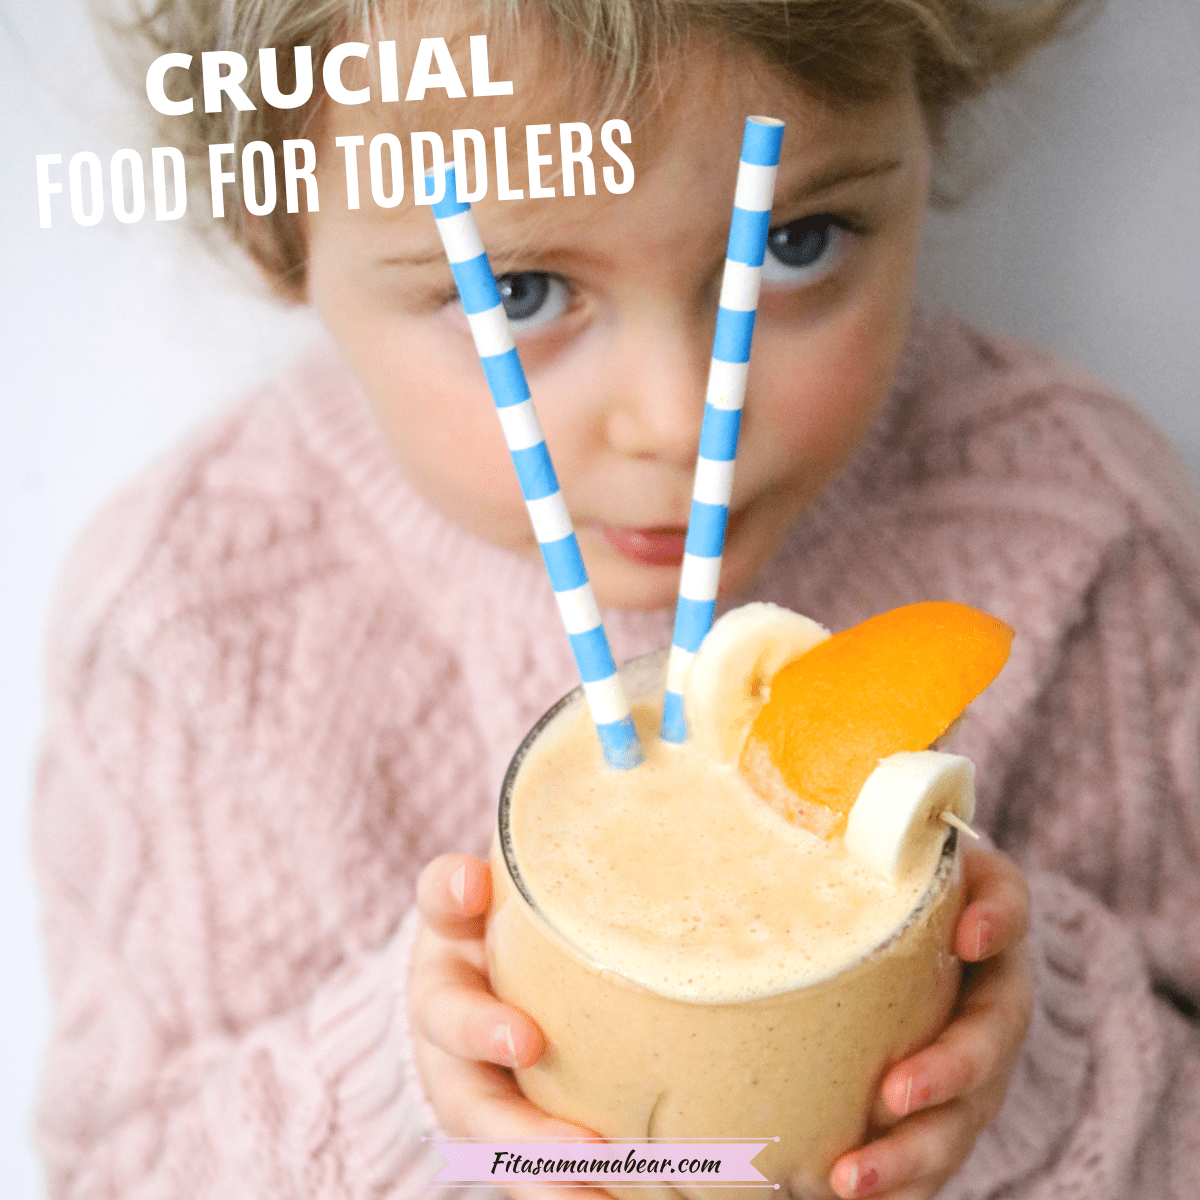 Featured image: toddler holding an orange smoothie with blue straws